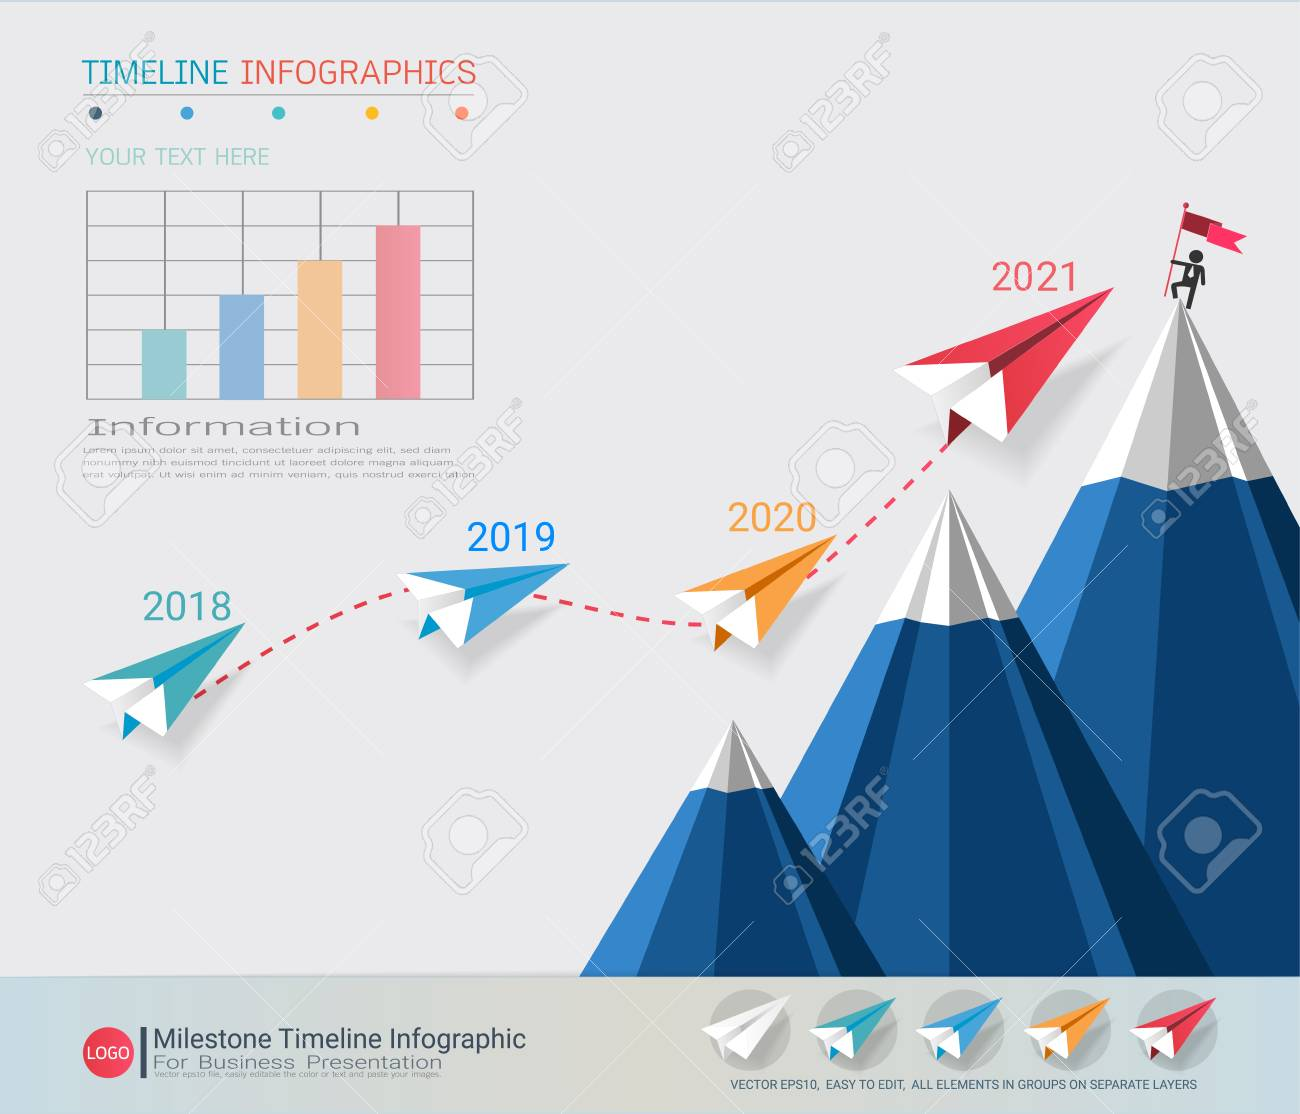 Milestone timeline infographic design road map or strategic milestone timeline infographic design road map or strategic plan to define company values can gumiabroncs Images